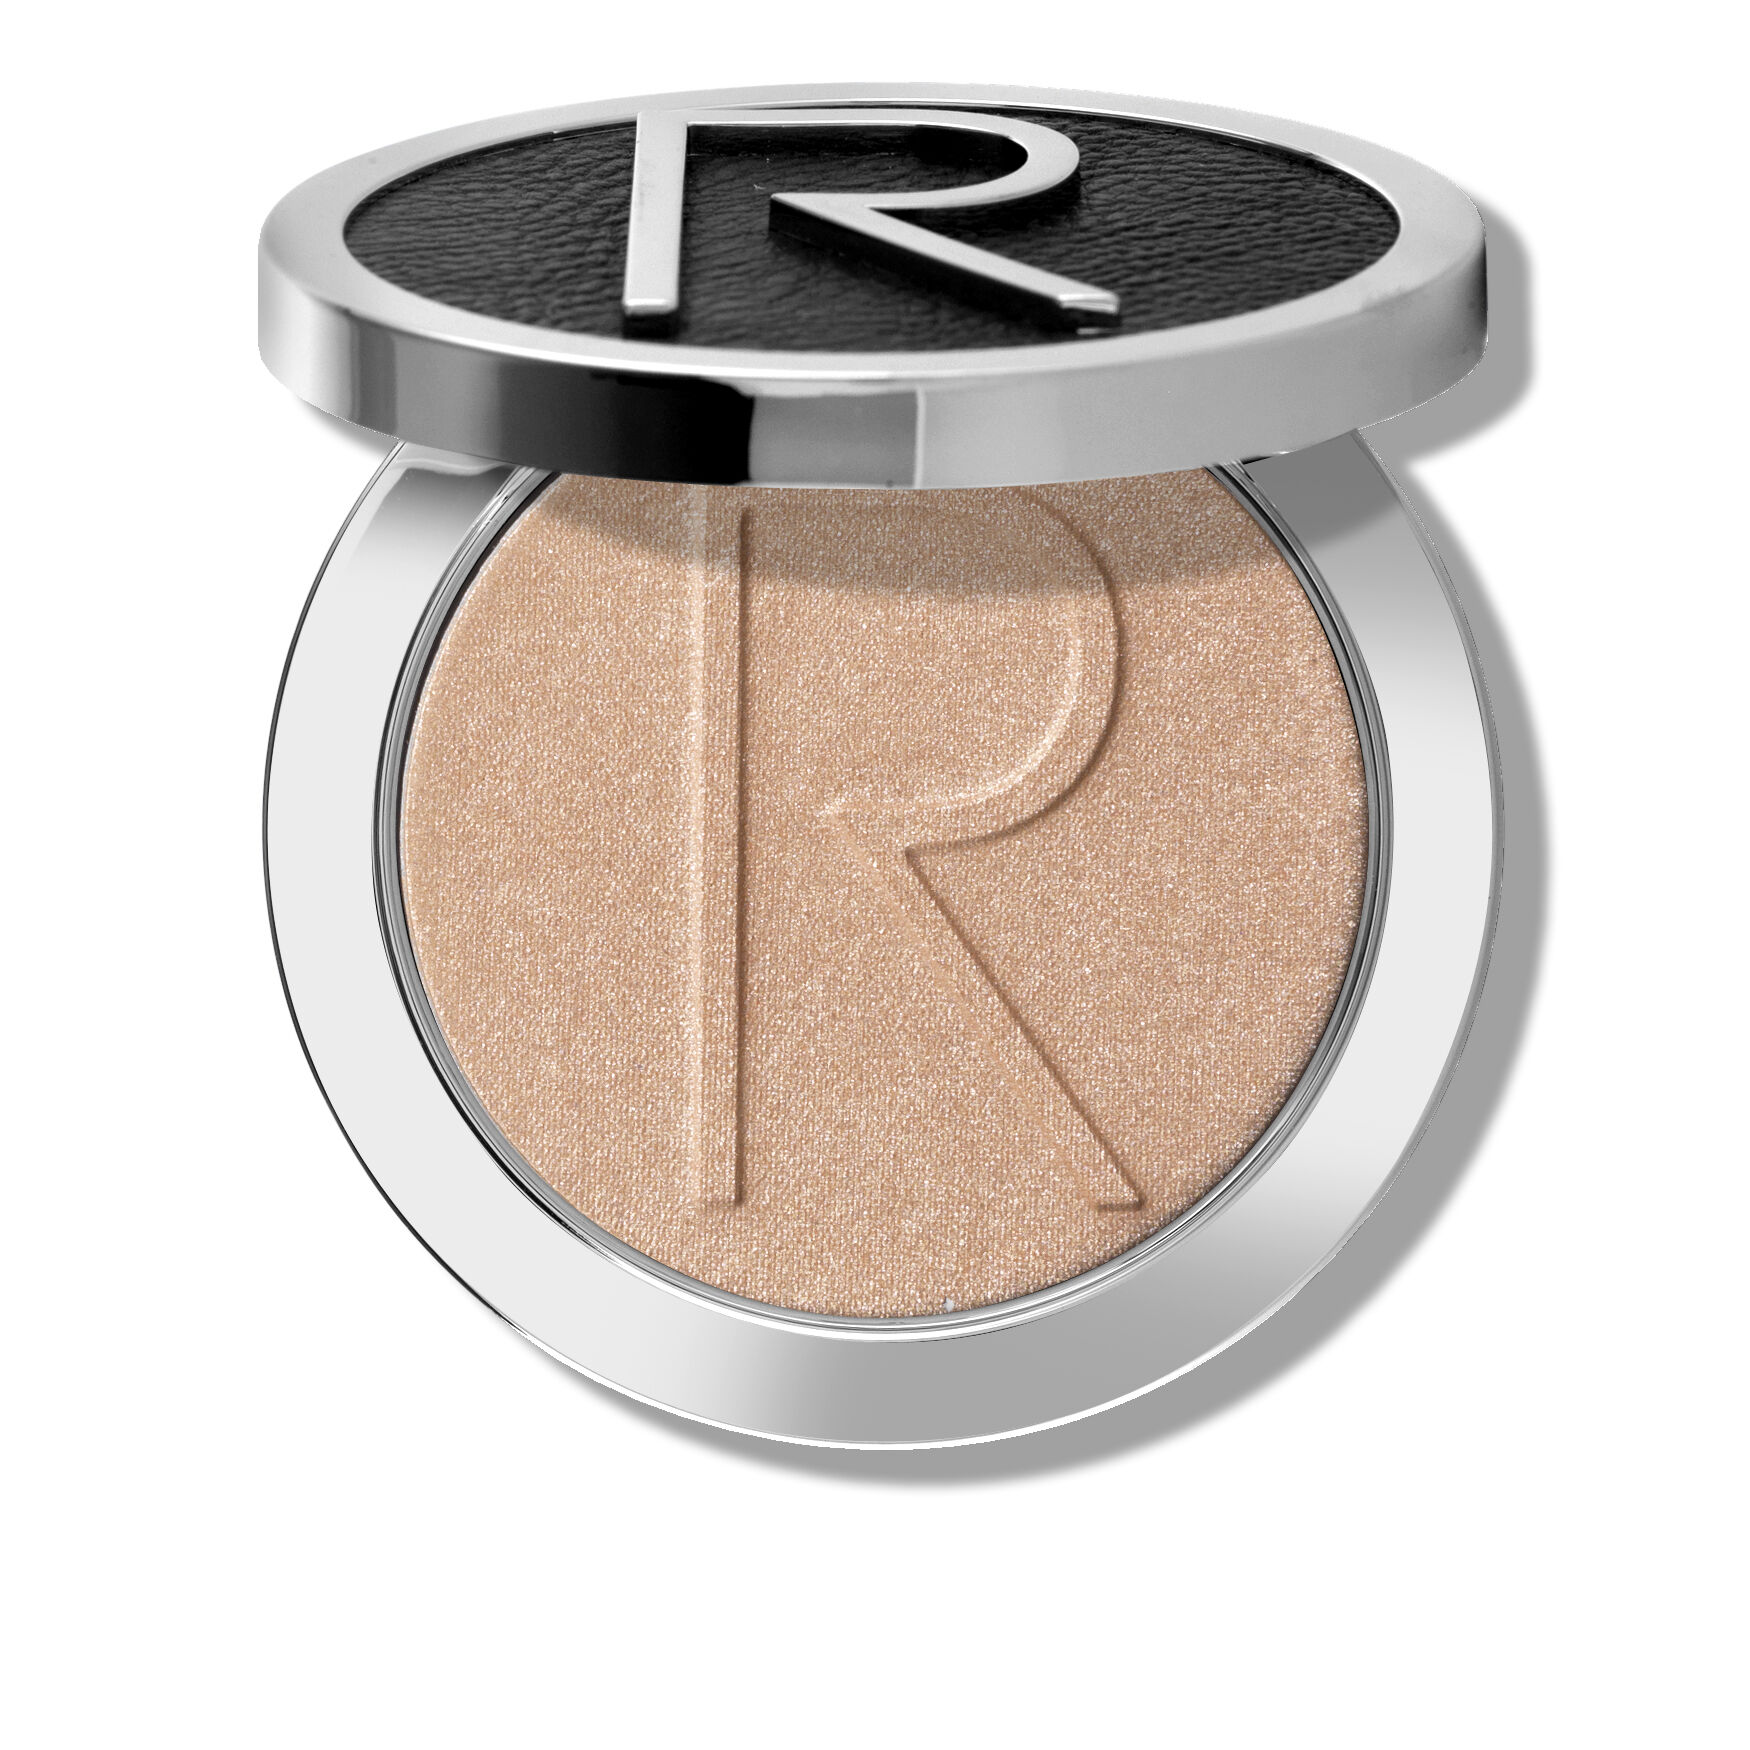 Instaglam Compact Deluxe Highlighting Powder - 01